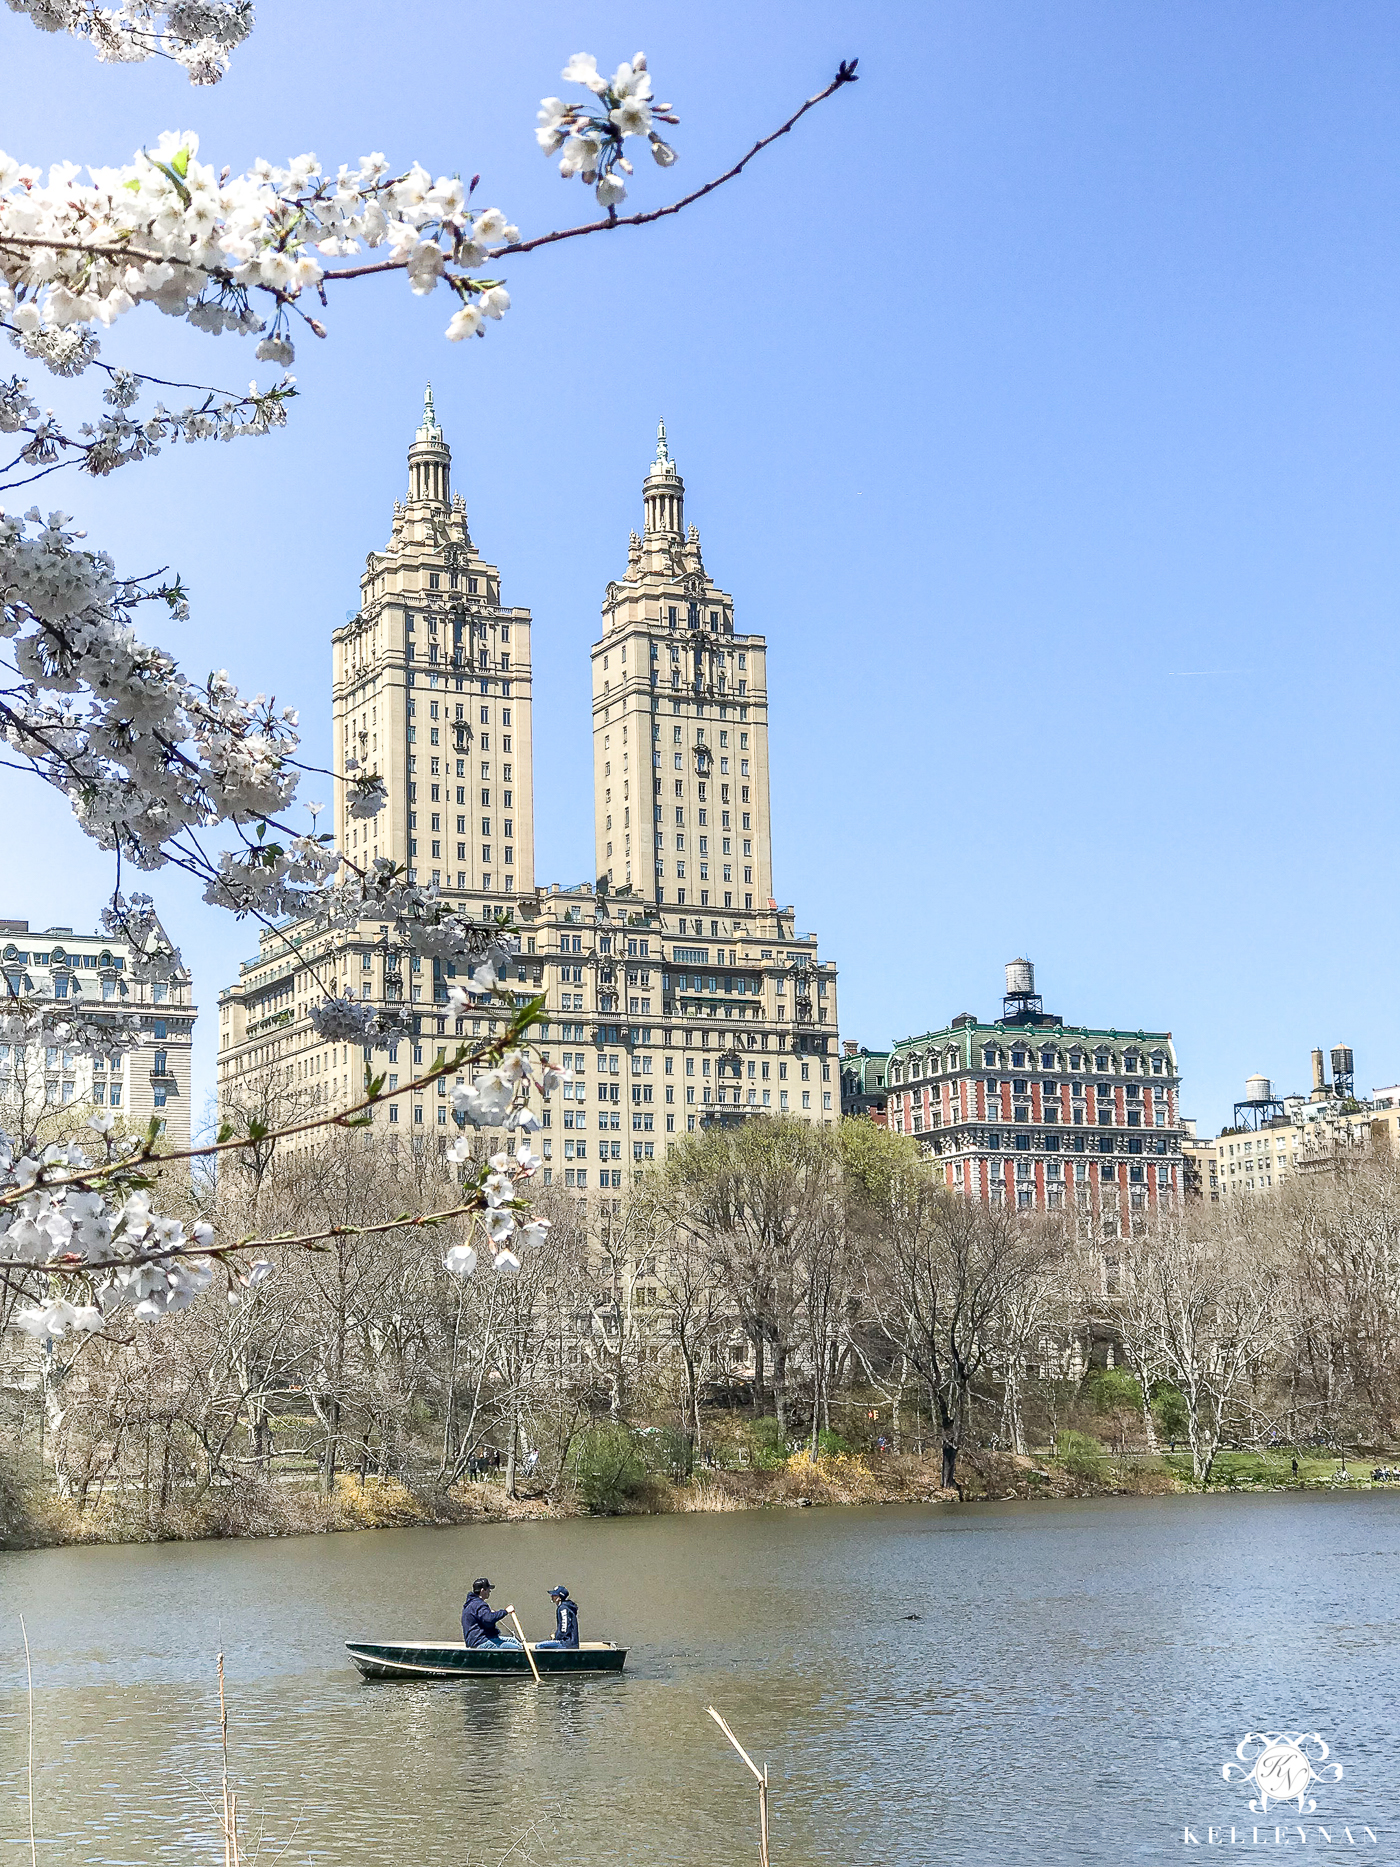 Central Park views in NYC with lake and paddle boats